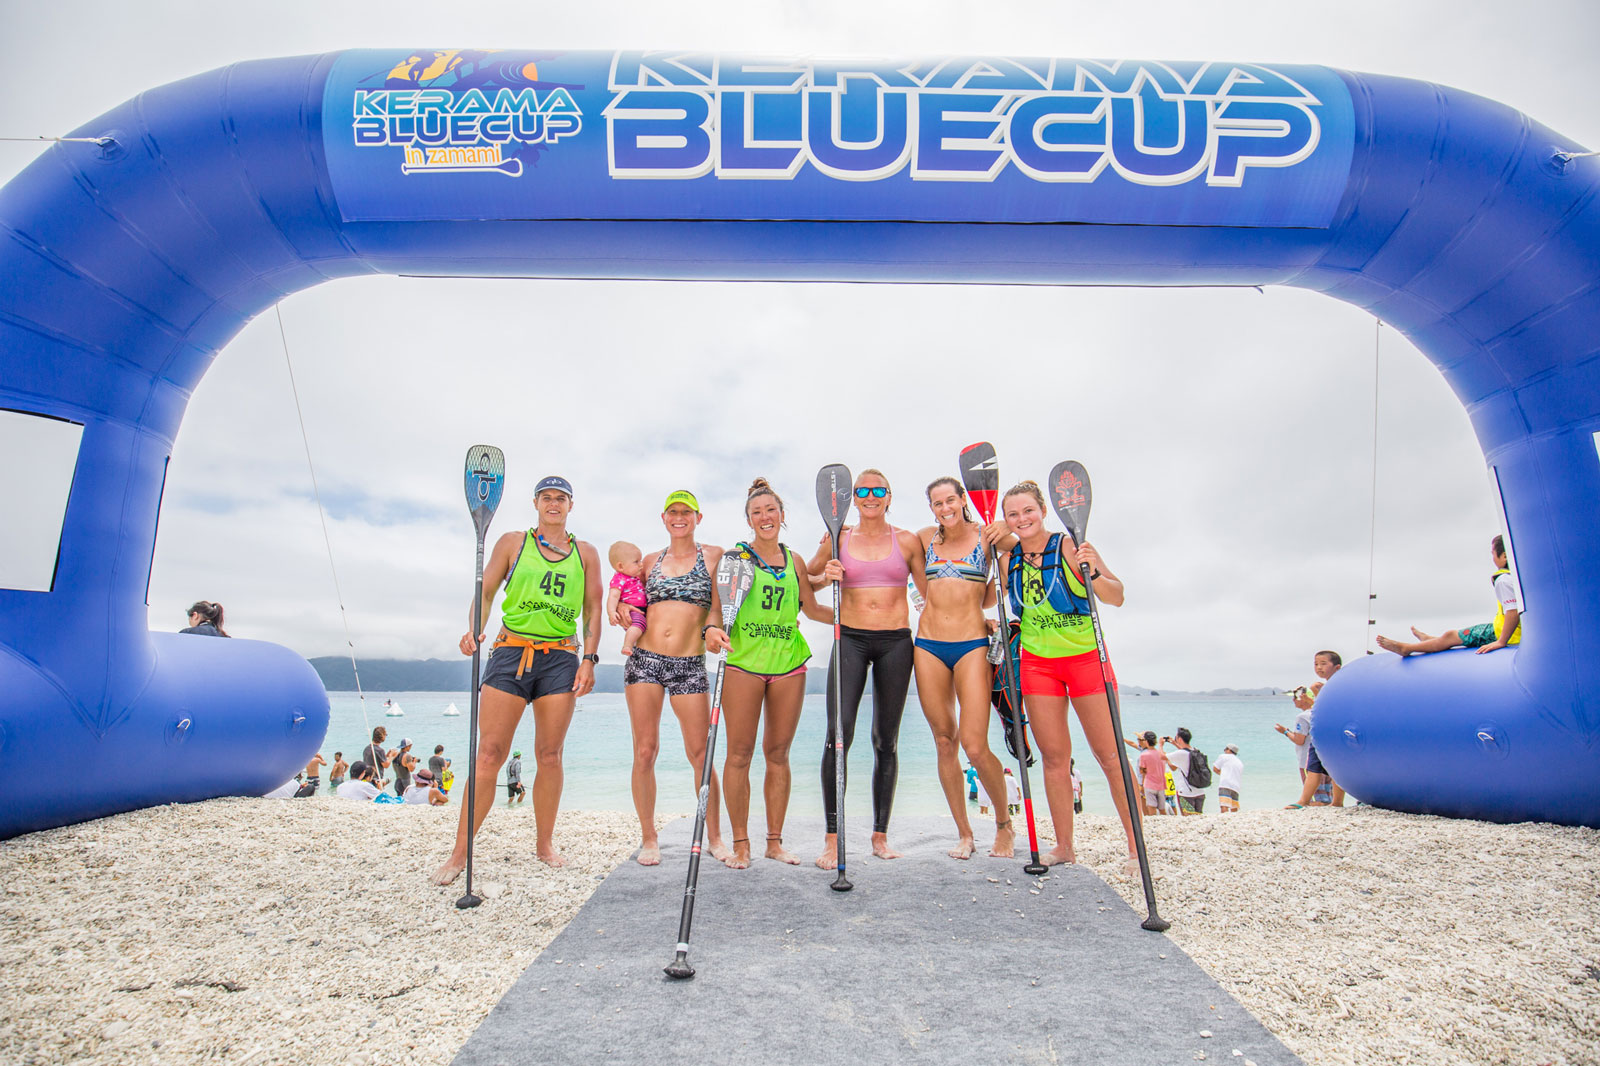 Connor-Baxter-and-Sonni-Honscheid-Crowned-Champs-at-2018-Kerama-Blue-Cup-PC-Georgia-Schofield-women-podium